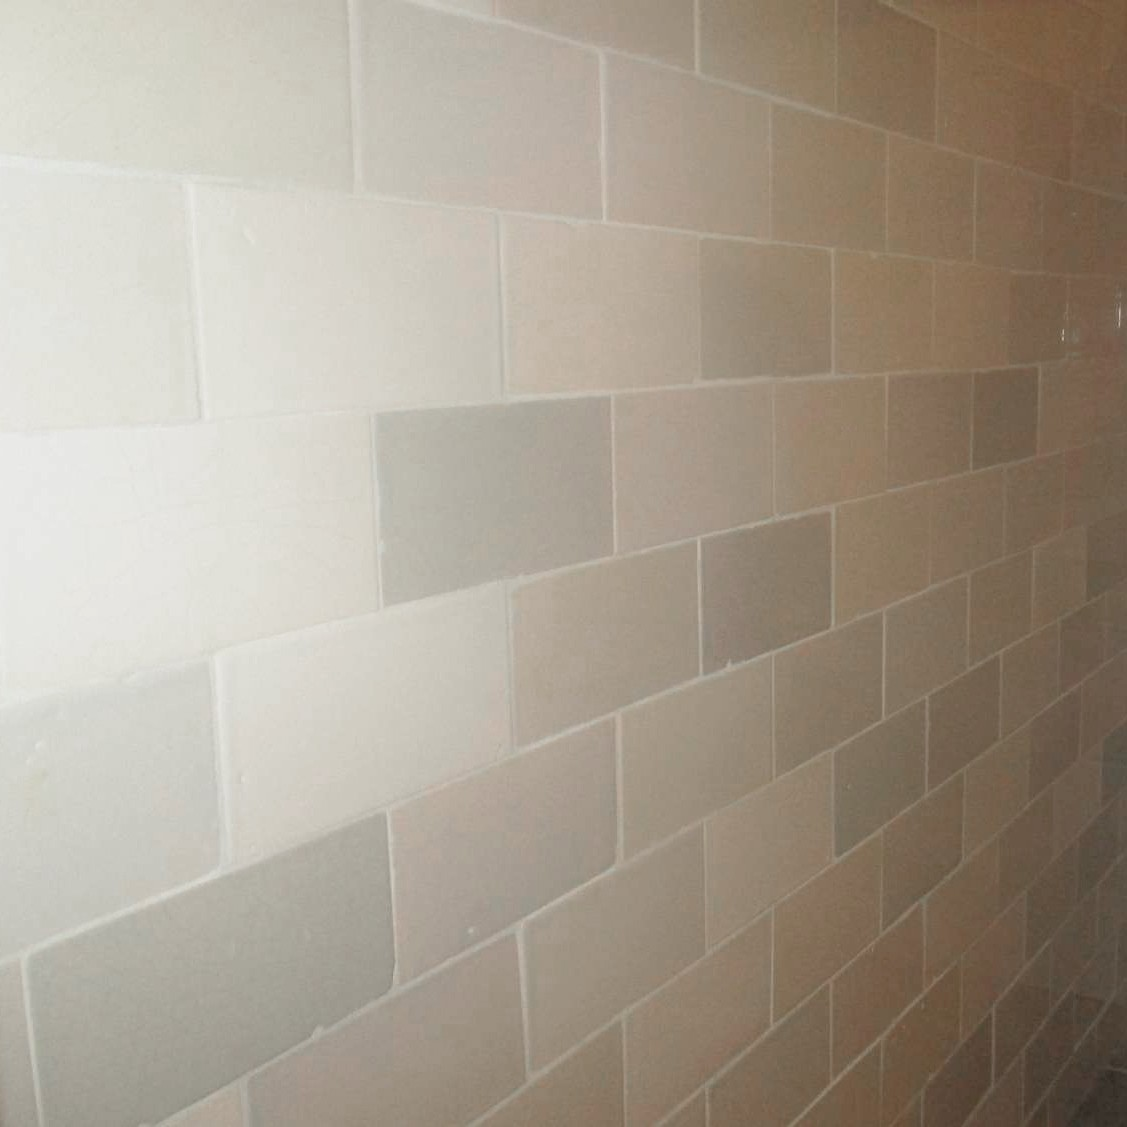 Handmade industrial wall tiles